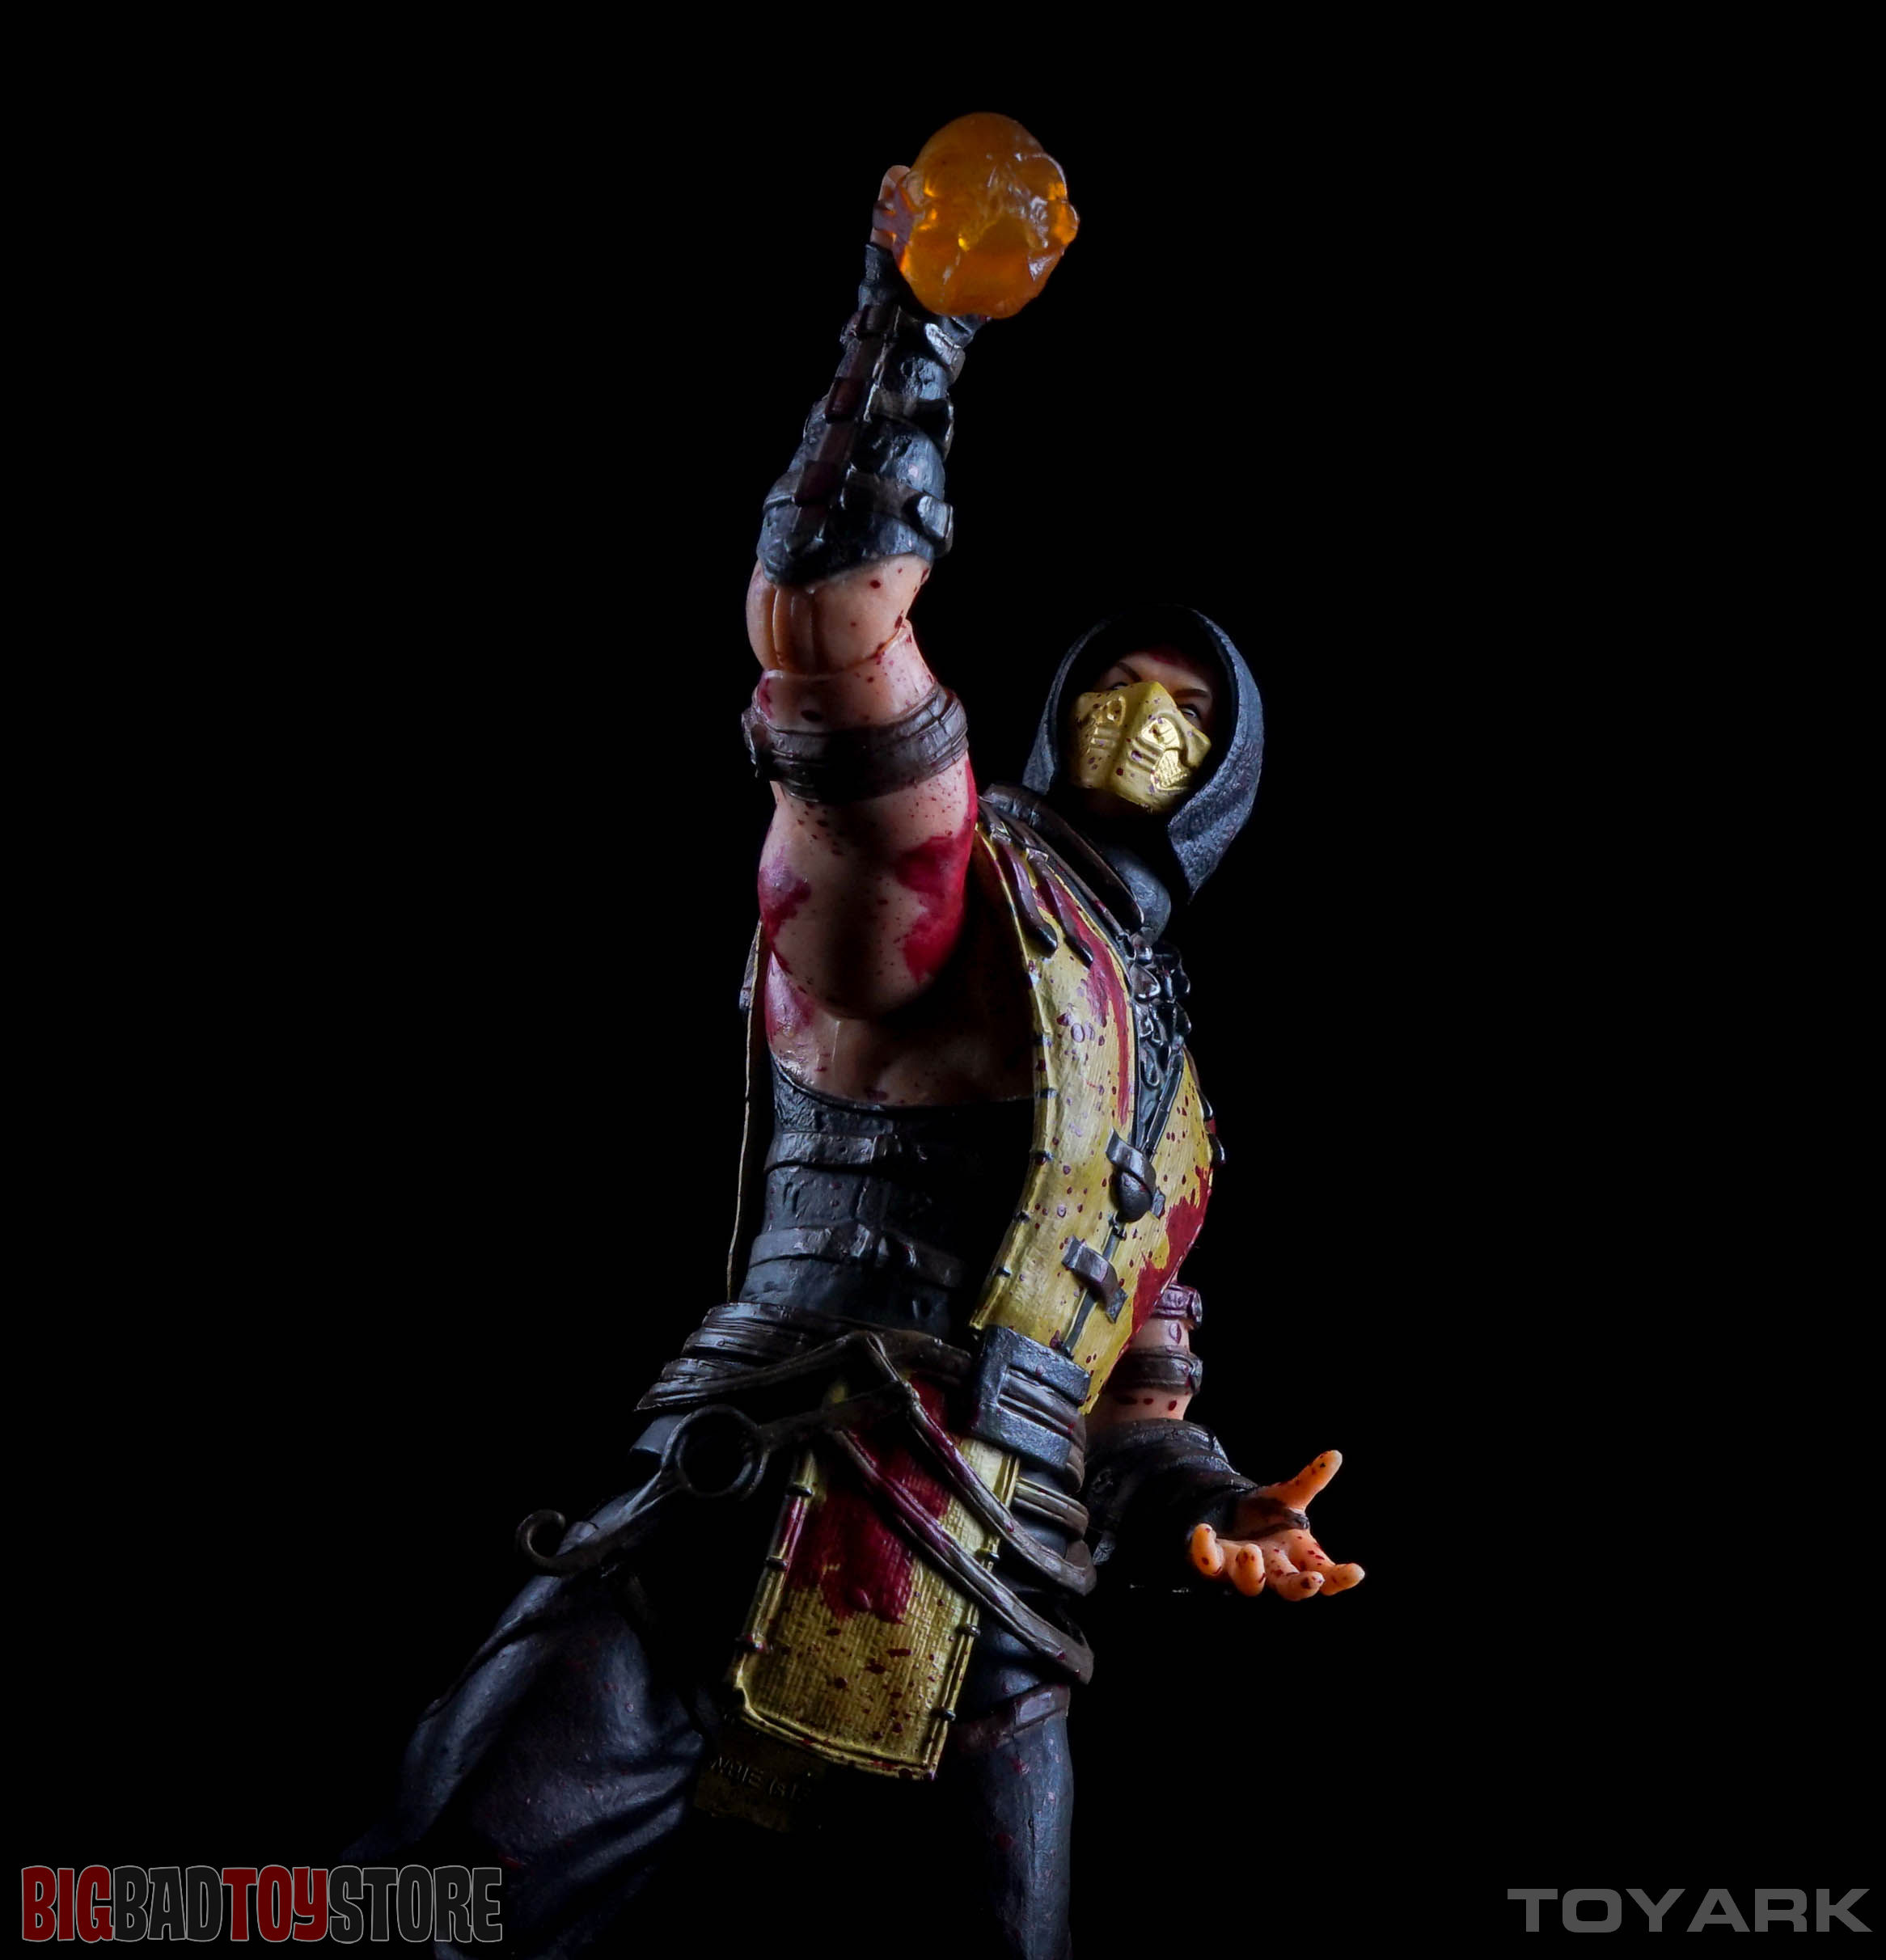 http://news.toyark.com/wp-content/uploads/sites/4/2015/10/Mezco-PX-Mortal-Kombat-X-069.jpg